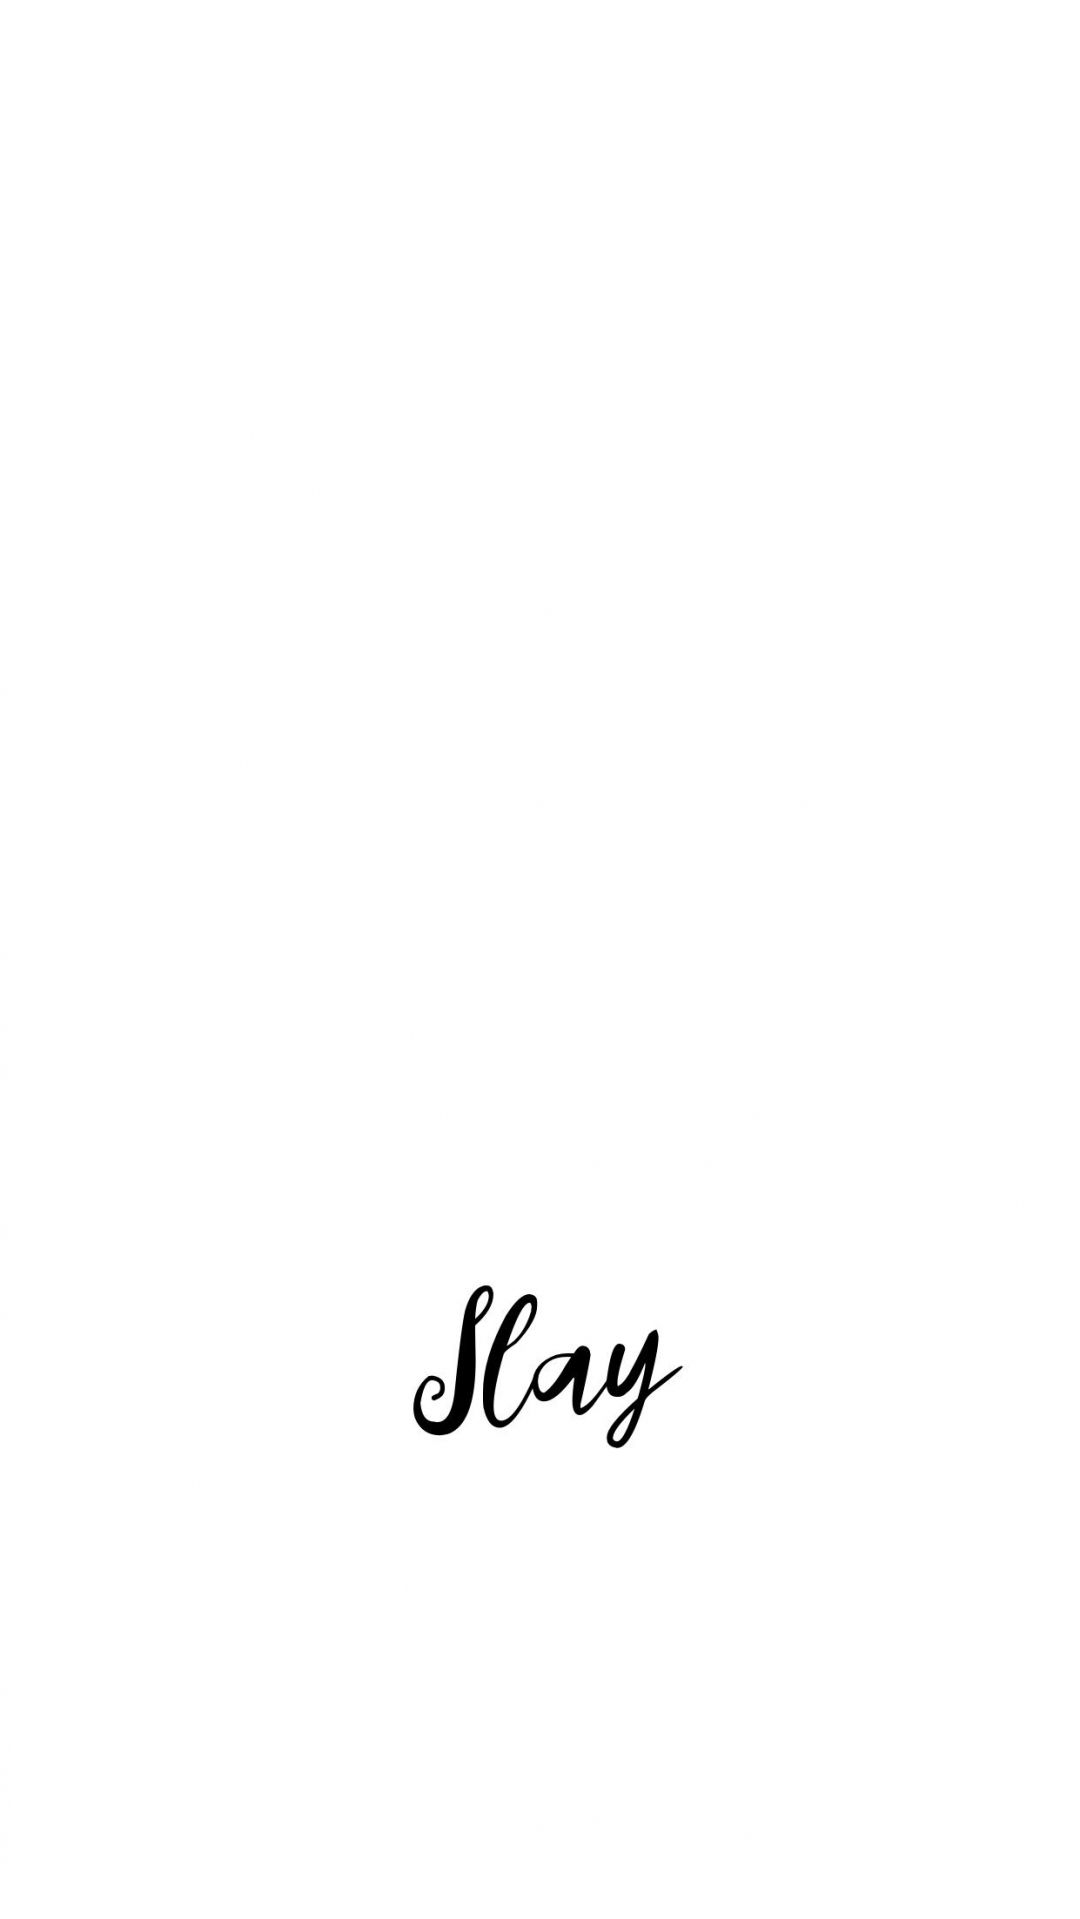 white minimalist iphonehd wallpapers desktop background android iphone 1080p 4k vfyrw